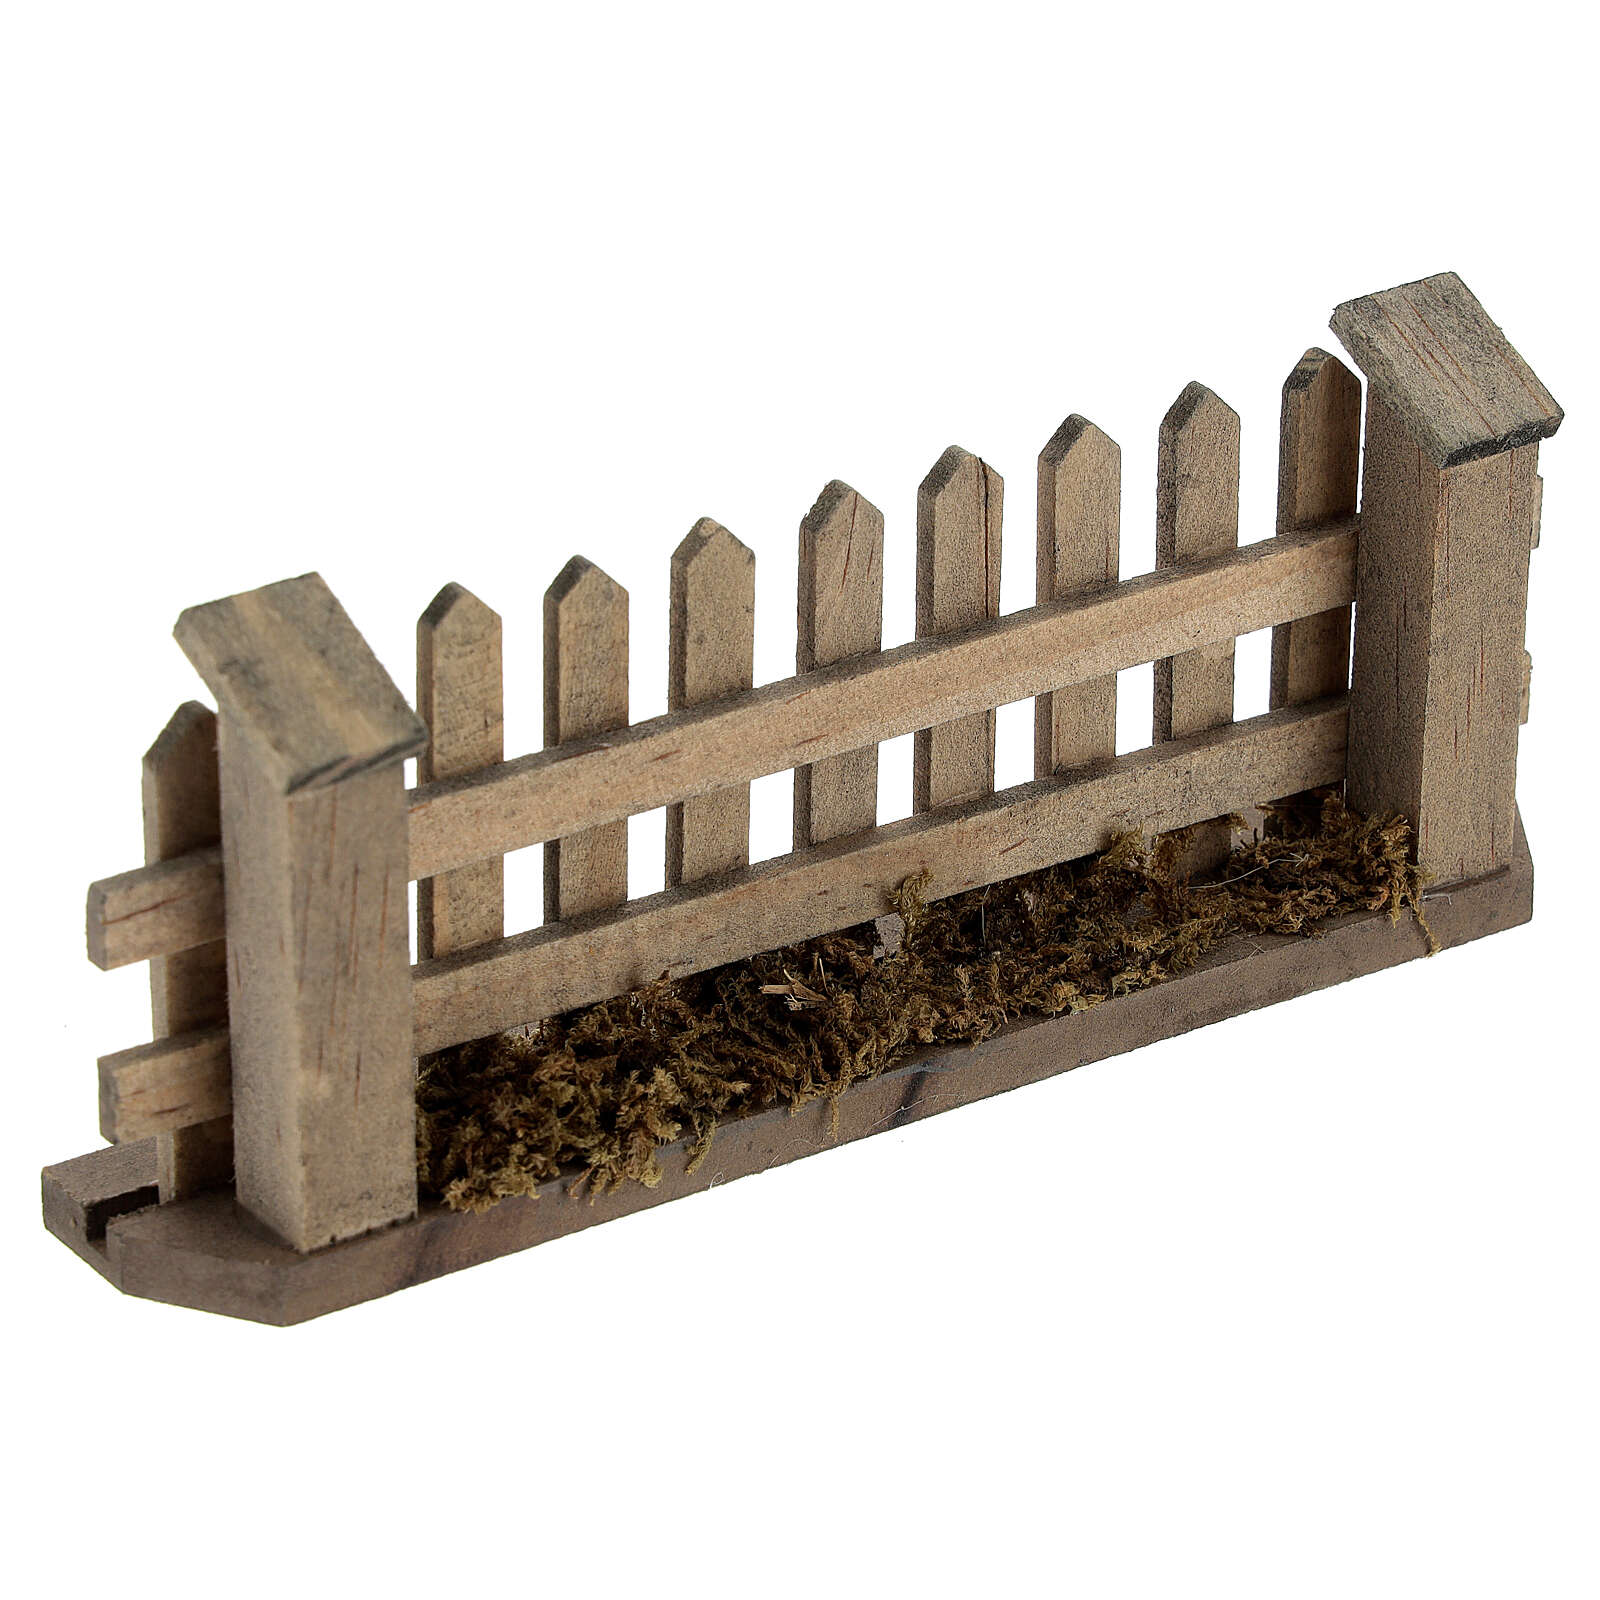 Wooden fence for Nativity scene 5x10x2 cm 4